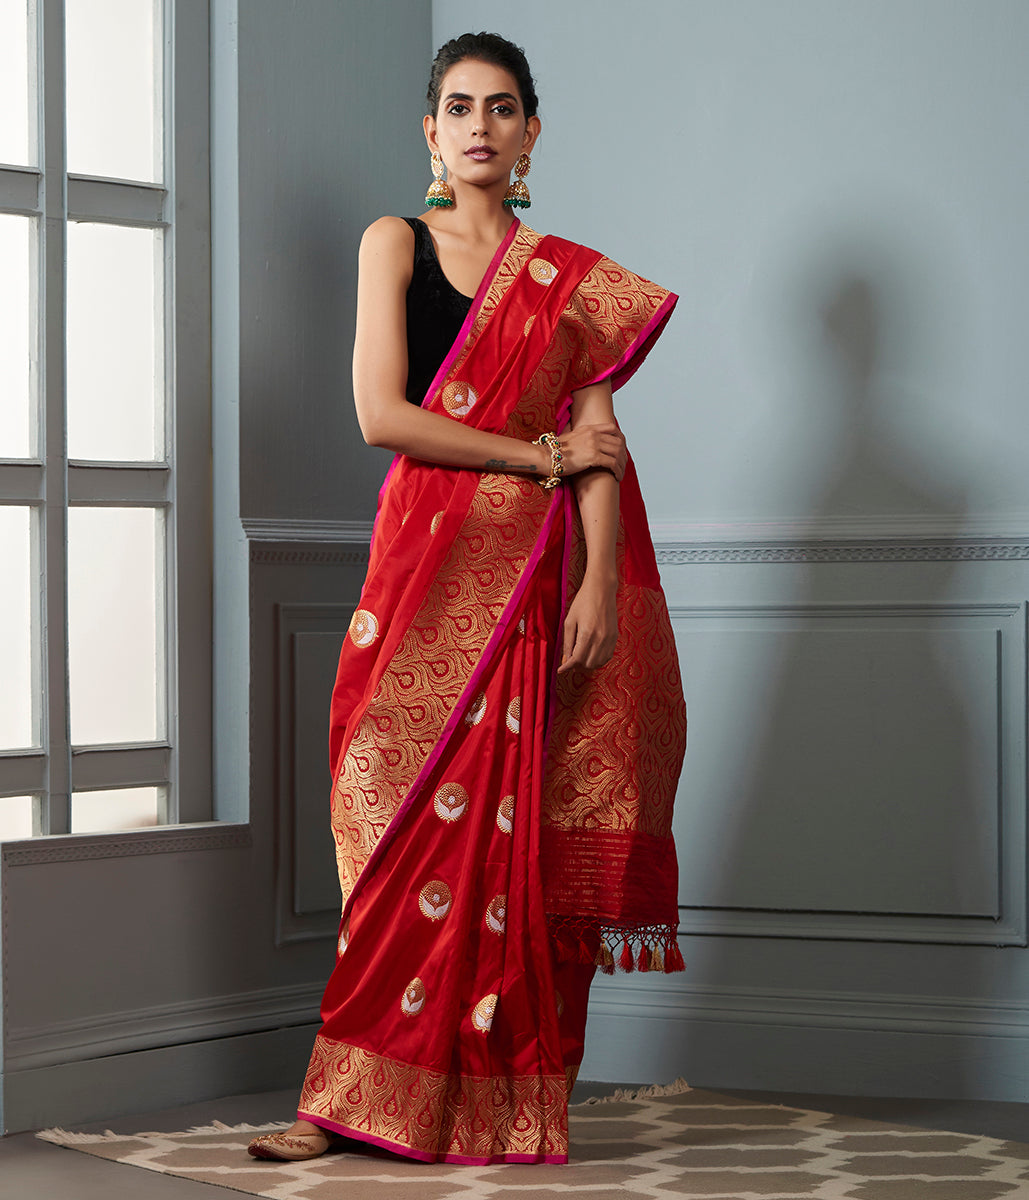 Red Kadhwa banarasi saree with sona Rupa booti